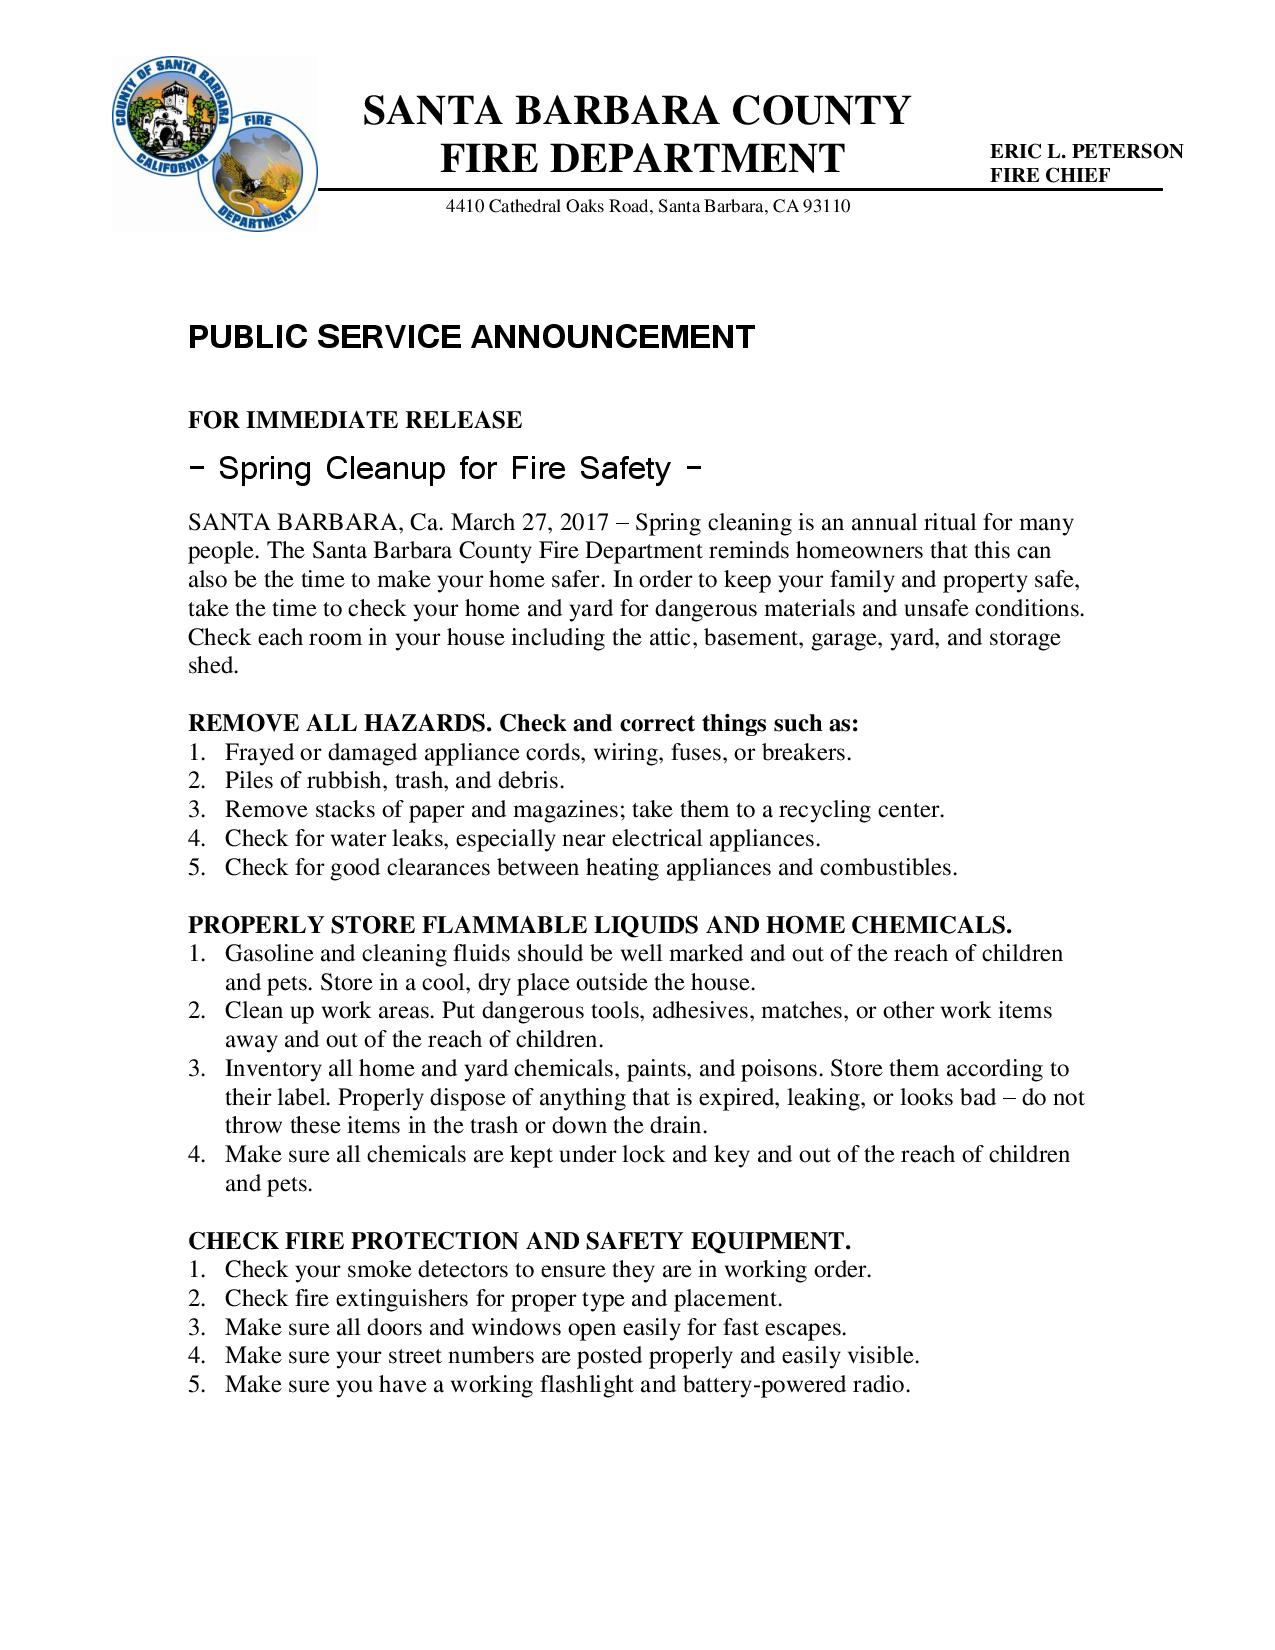 Spring Cleanup for Fire Safety-pg1